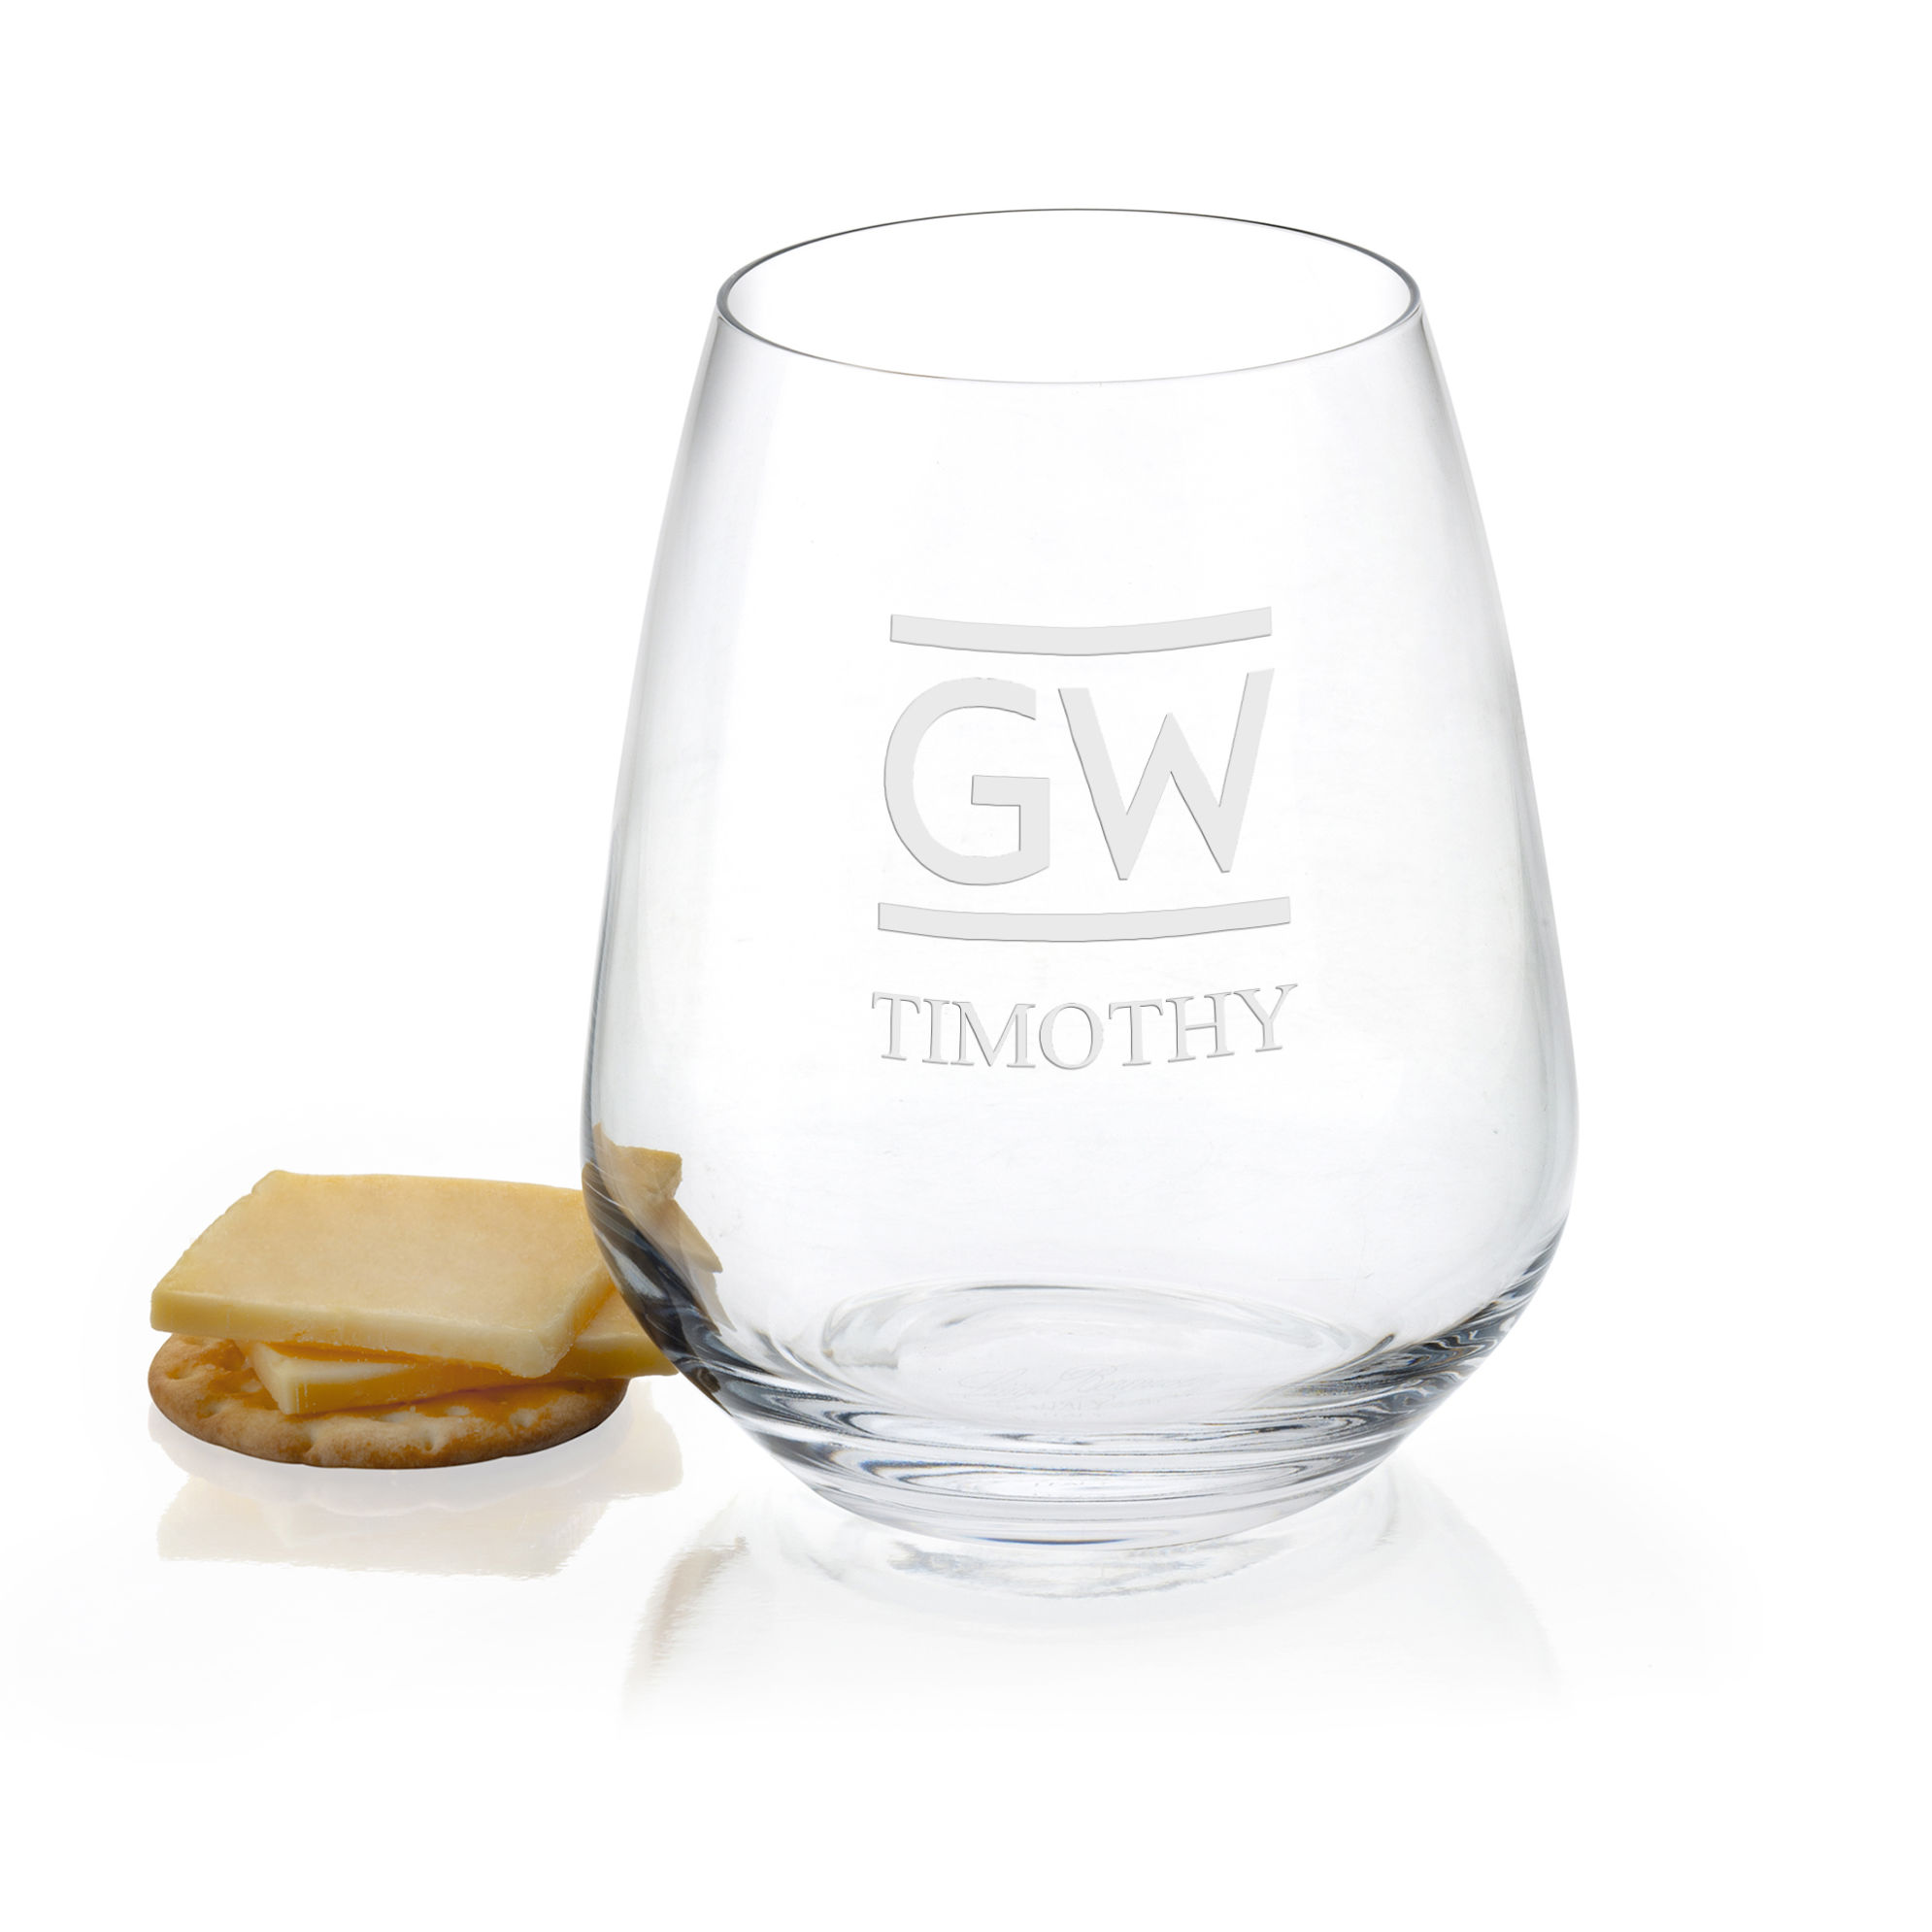 George Washington University Stemless Wine Glasses - Set of 2